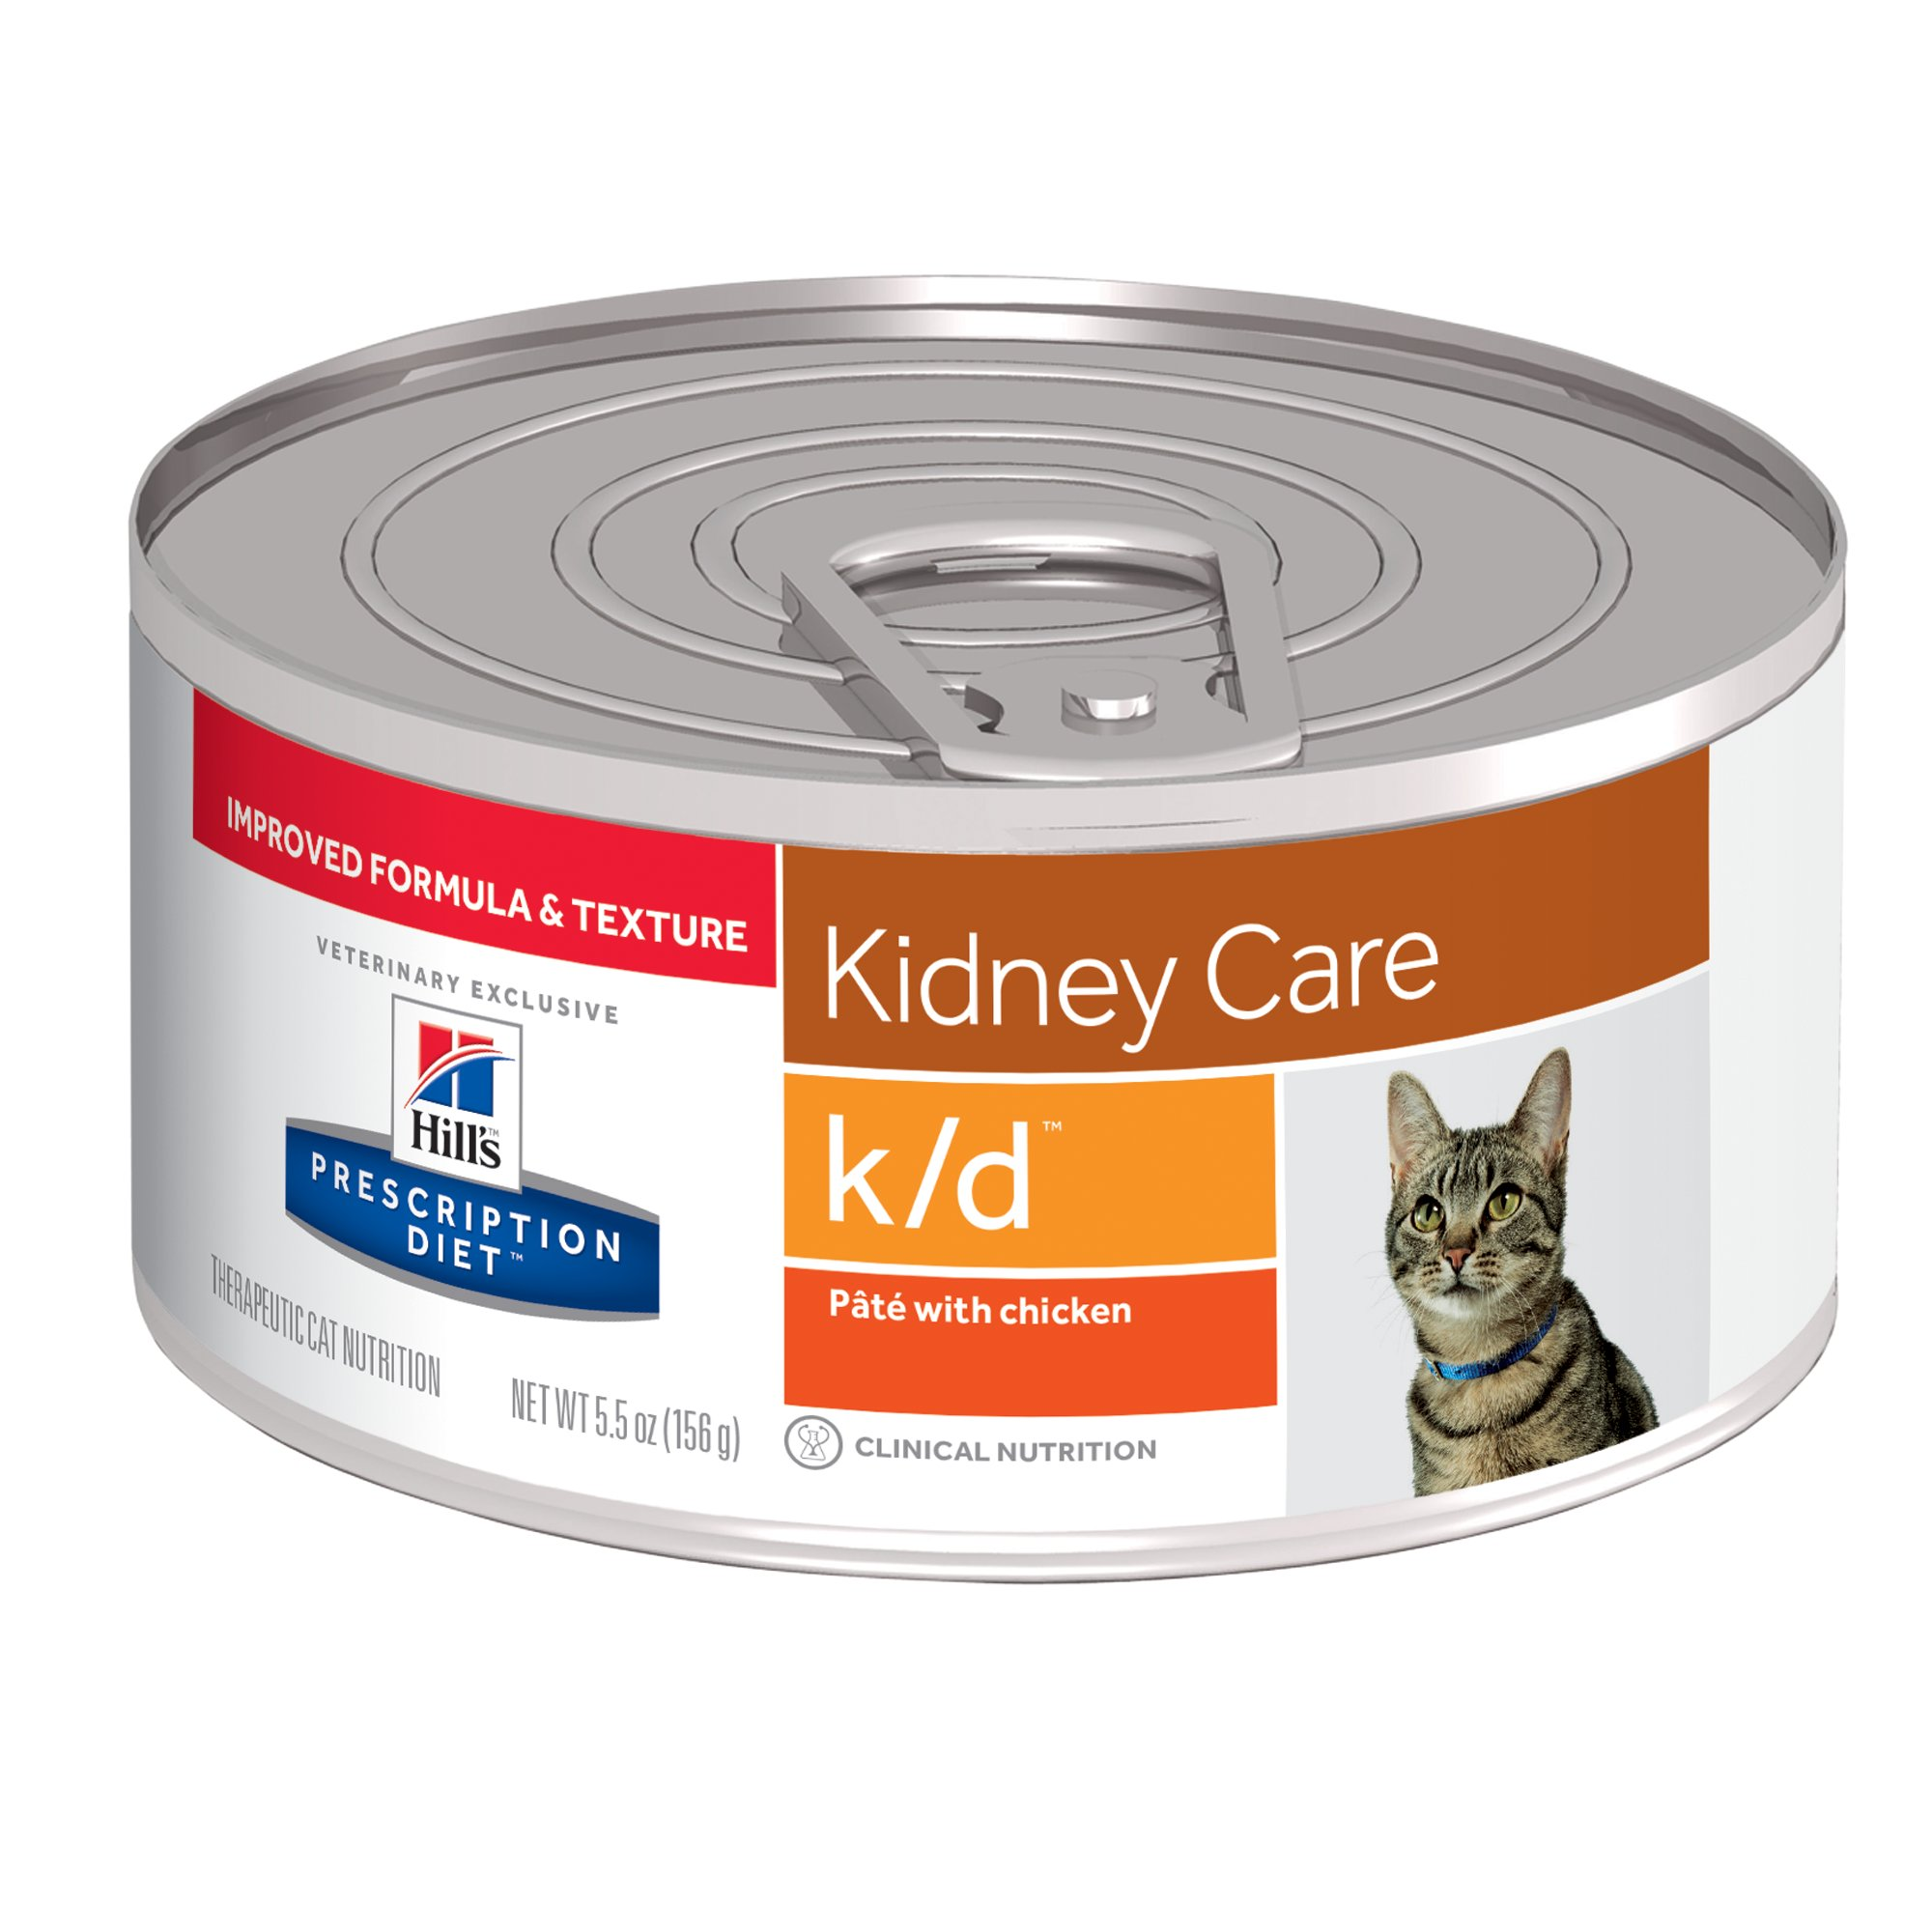 Kd Cat Food Canned